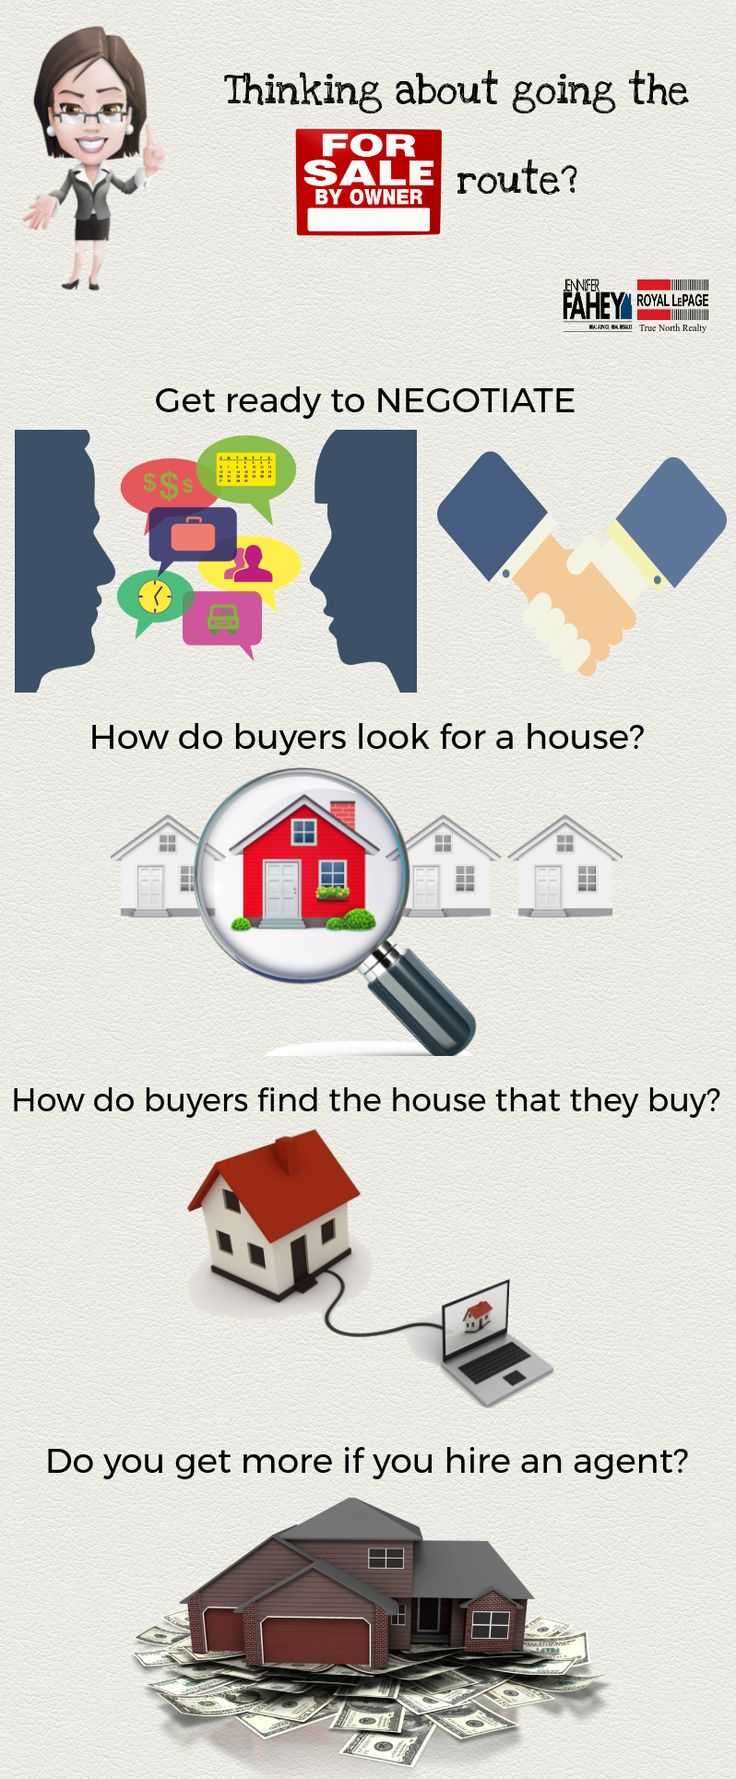 🏡 For Sale by Owner: What do you need to know? Check out our new blog about it! #realestate #realestatetips #homeselling #homesforsale #fsbo #blog #realestatelife #homesellingtips #goodreads #infographie